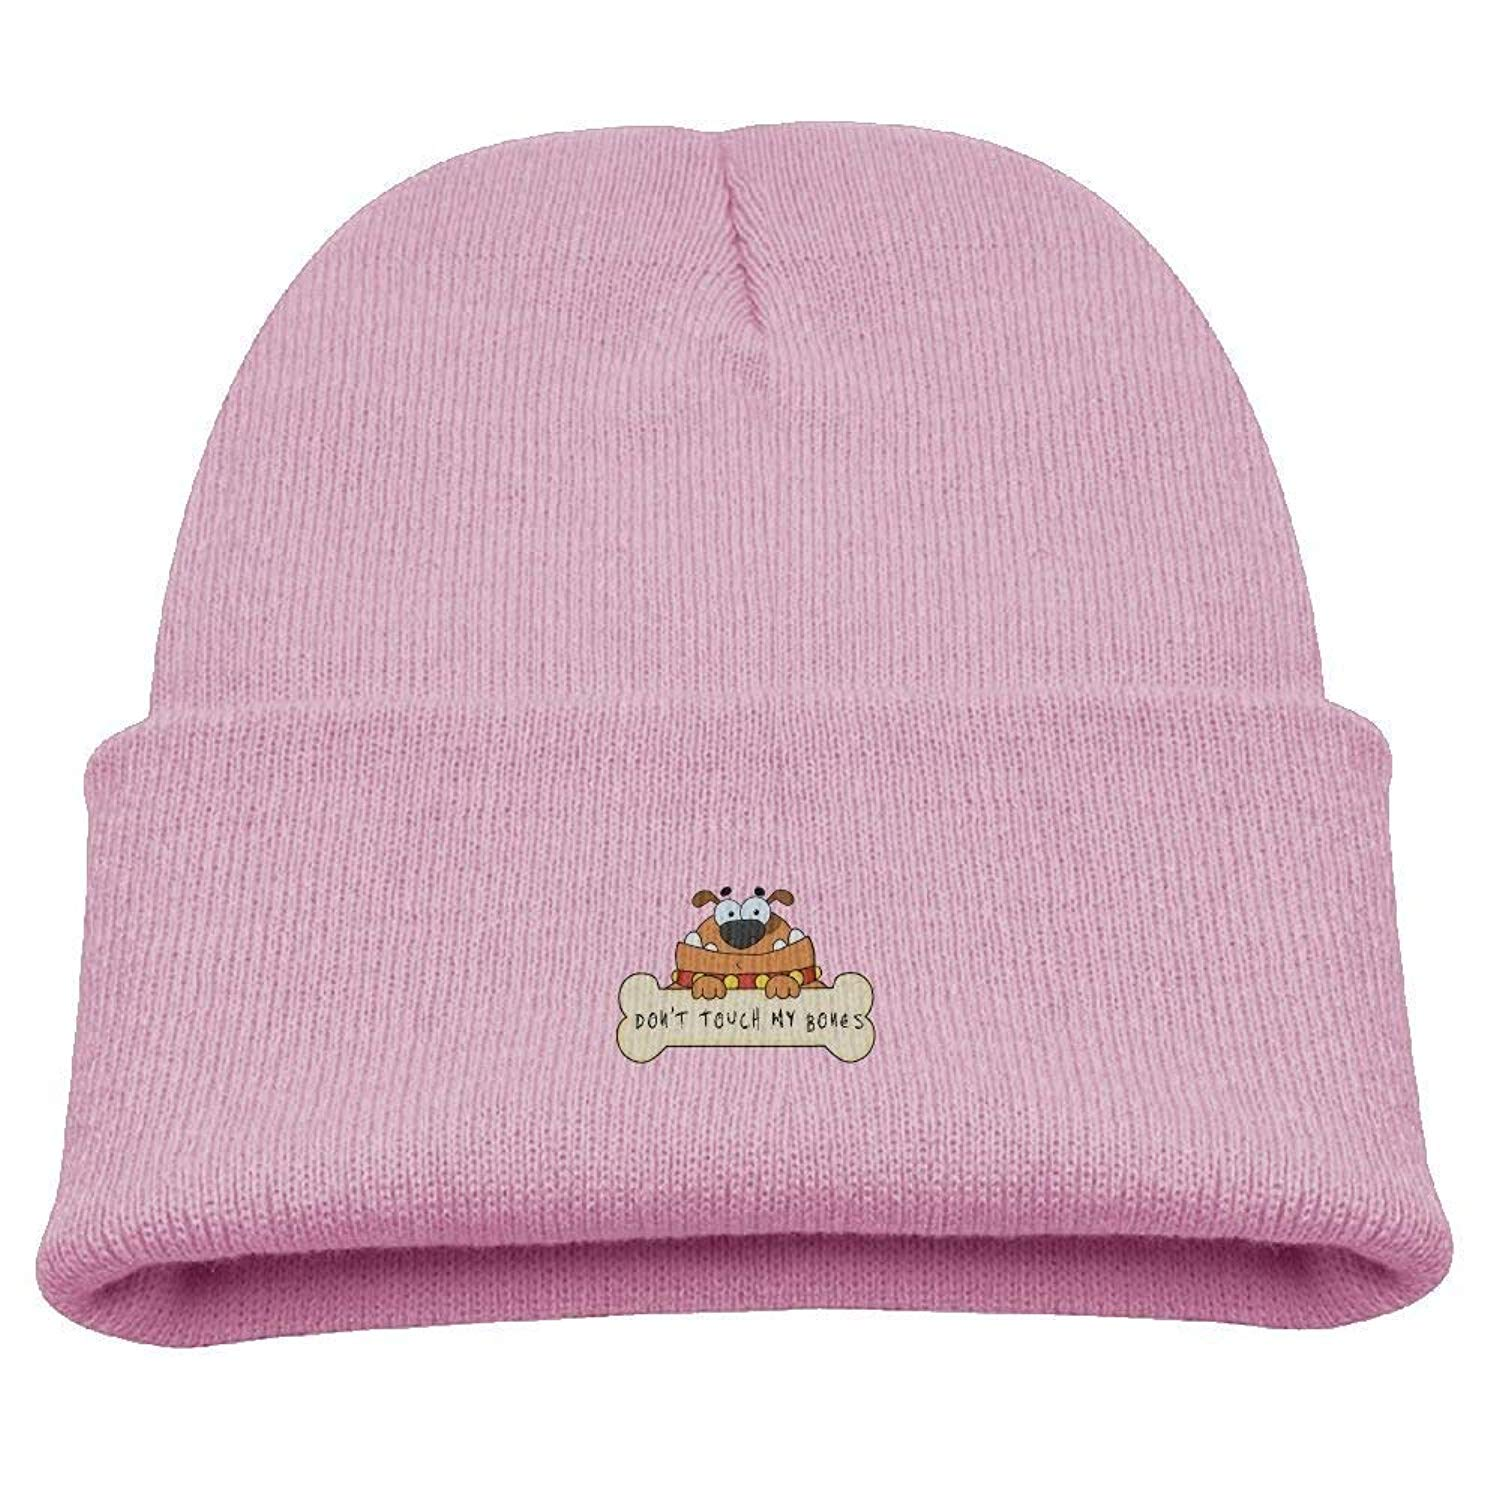 1ac551b1a0a6e Cheap Animal Knit Hats, find Animal Knit Hats deals on line at ...